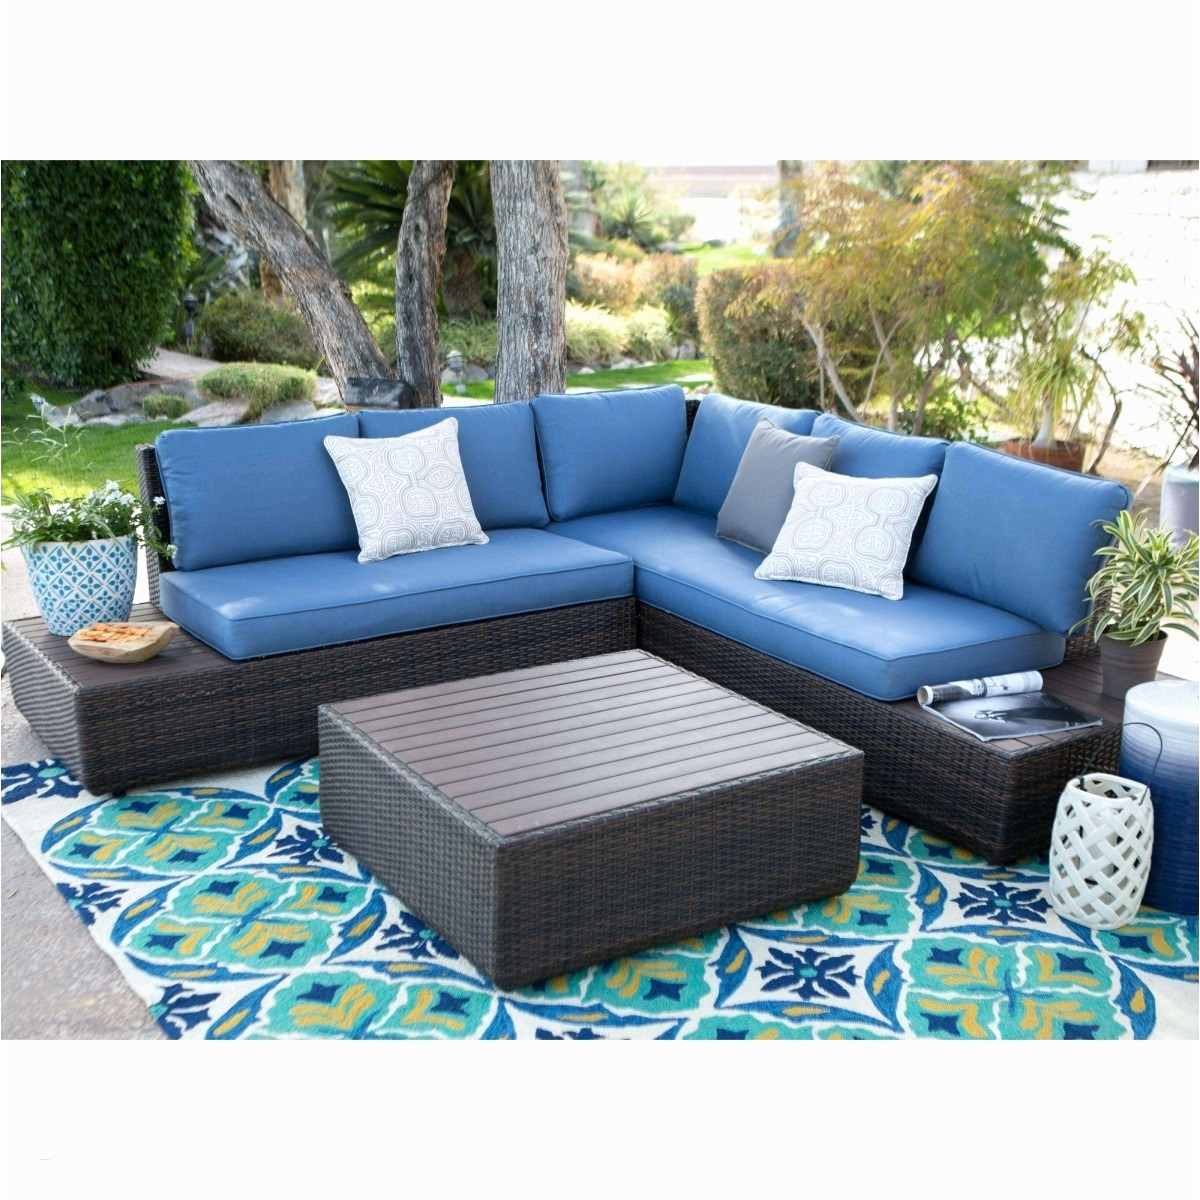 outdoor cushions walmart awesome canvas folding chairs picture wicker outdoor sofa 0d patio chairs